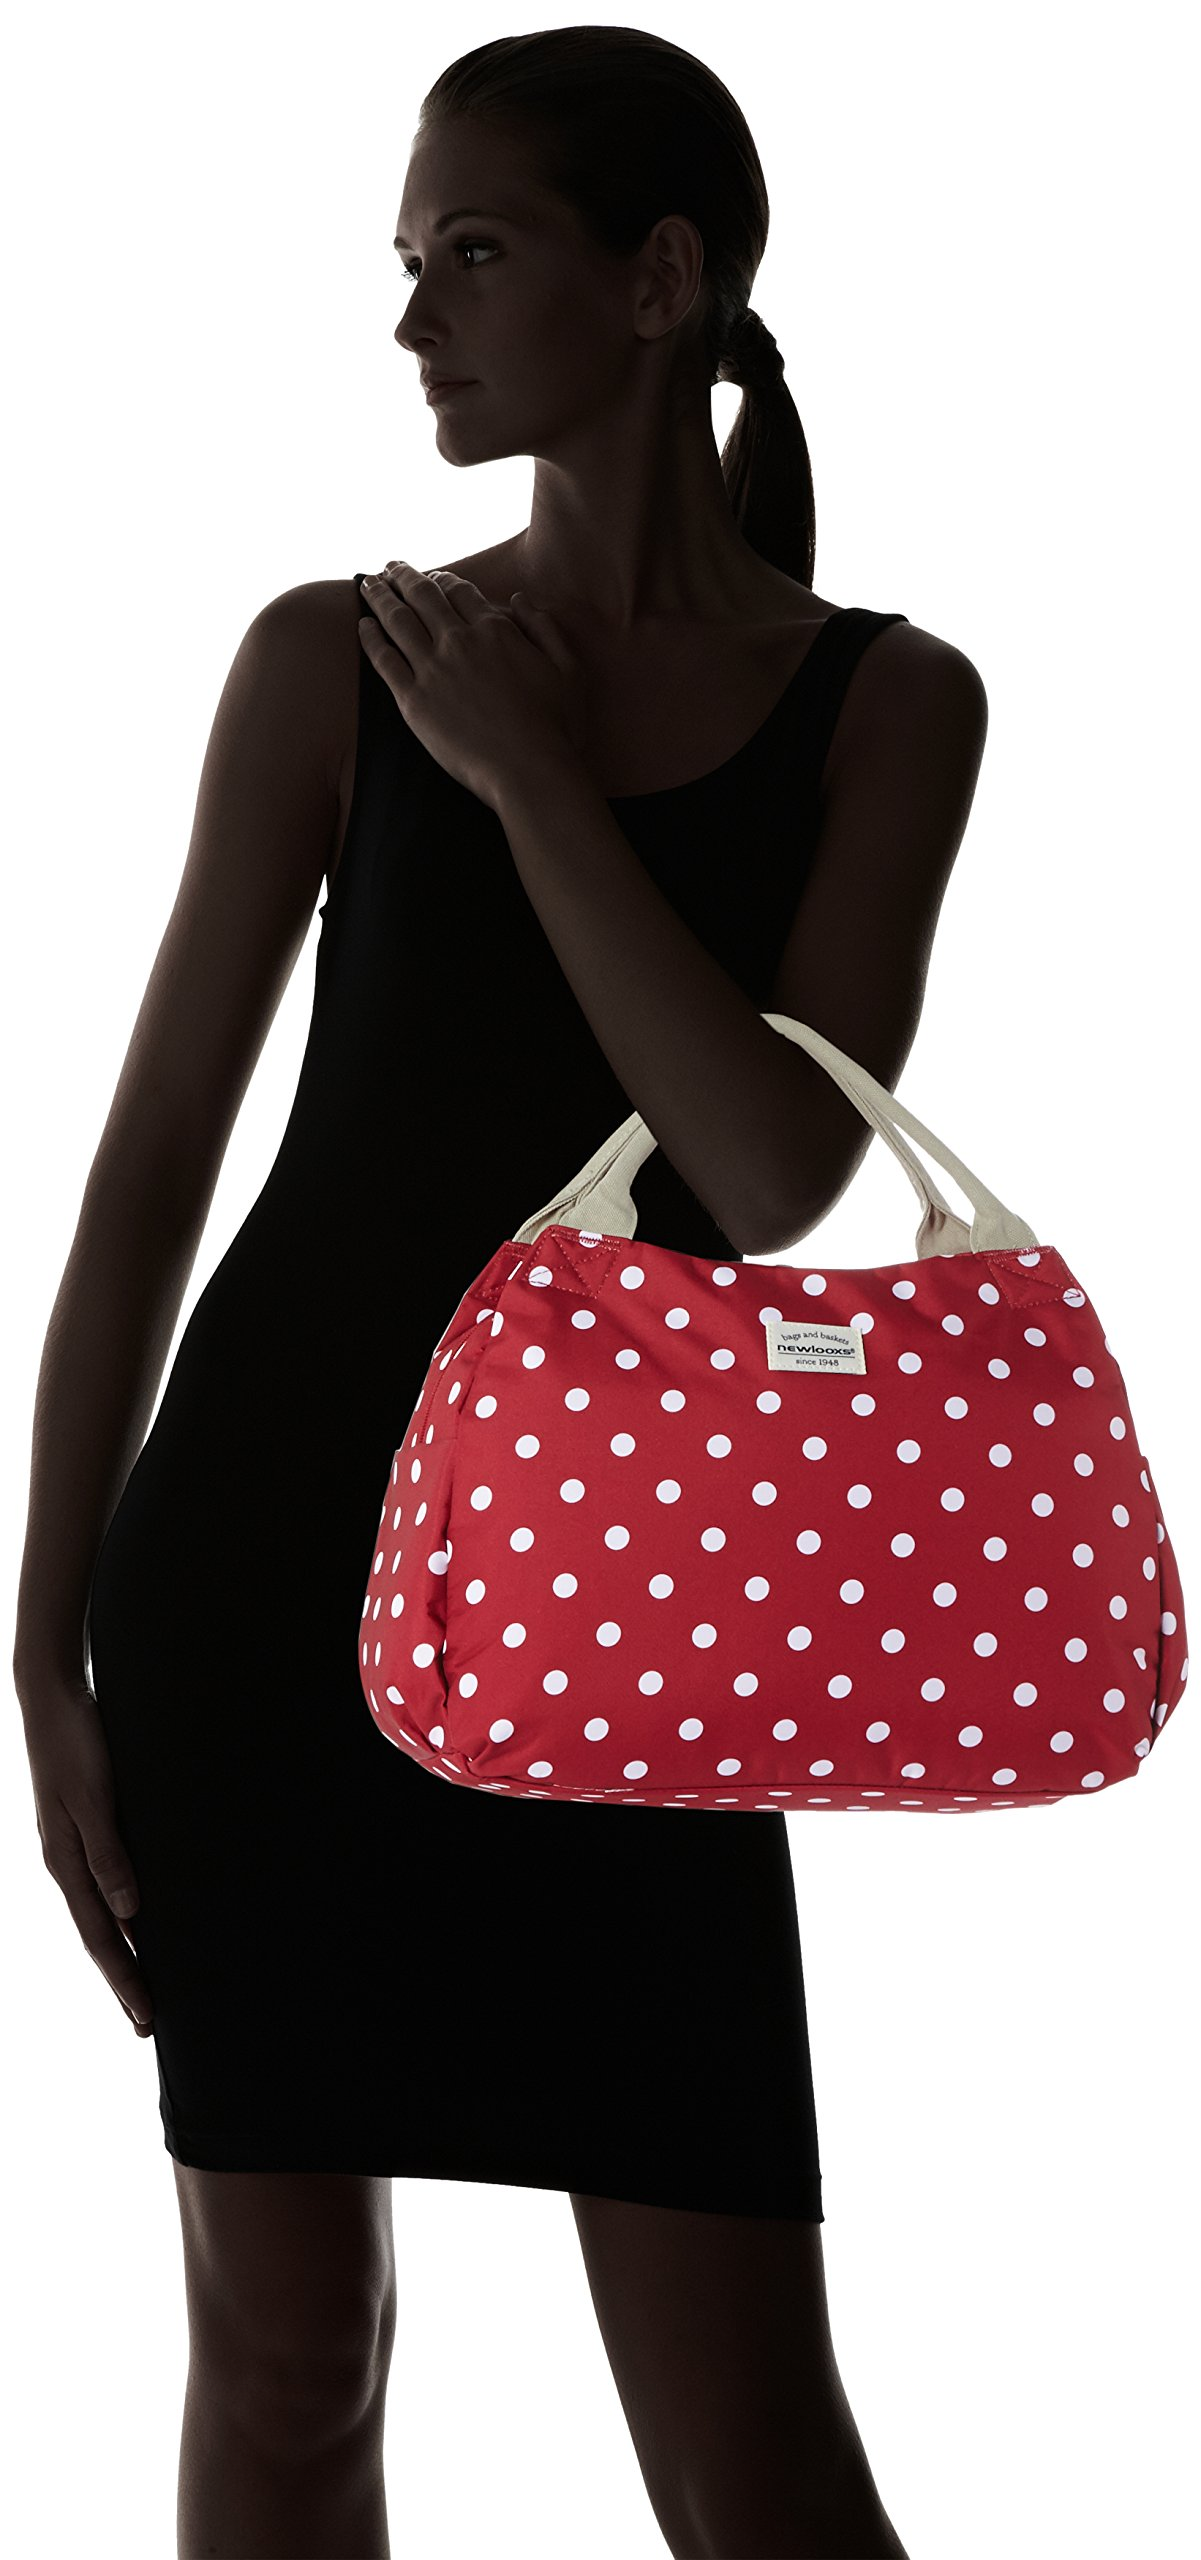 New Looxs Tosca handbag with polka dots, red [Sports] by New (Image #7)